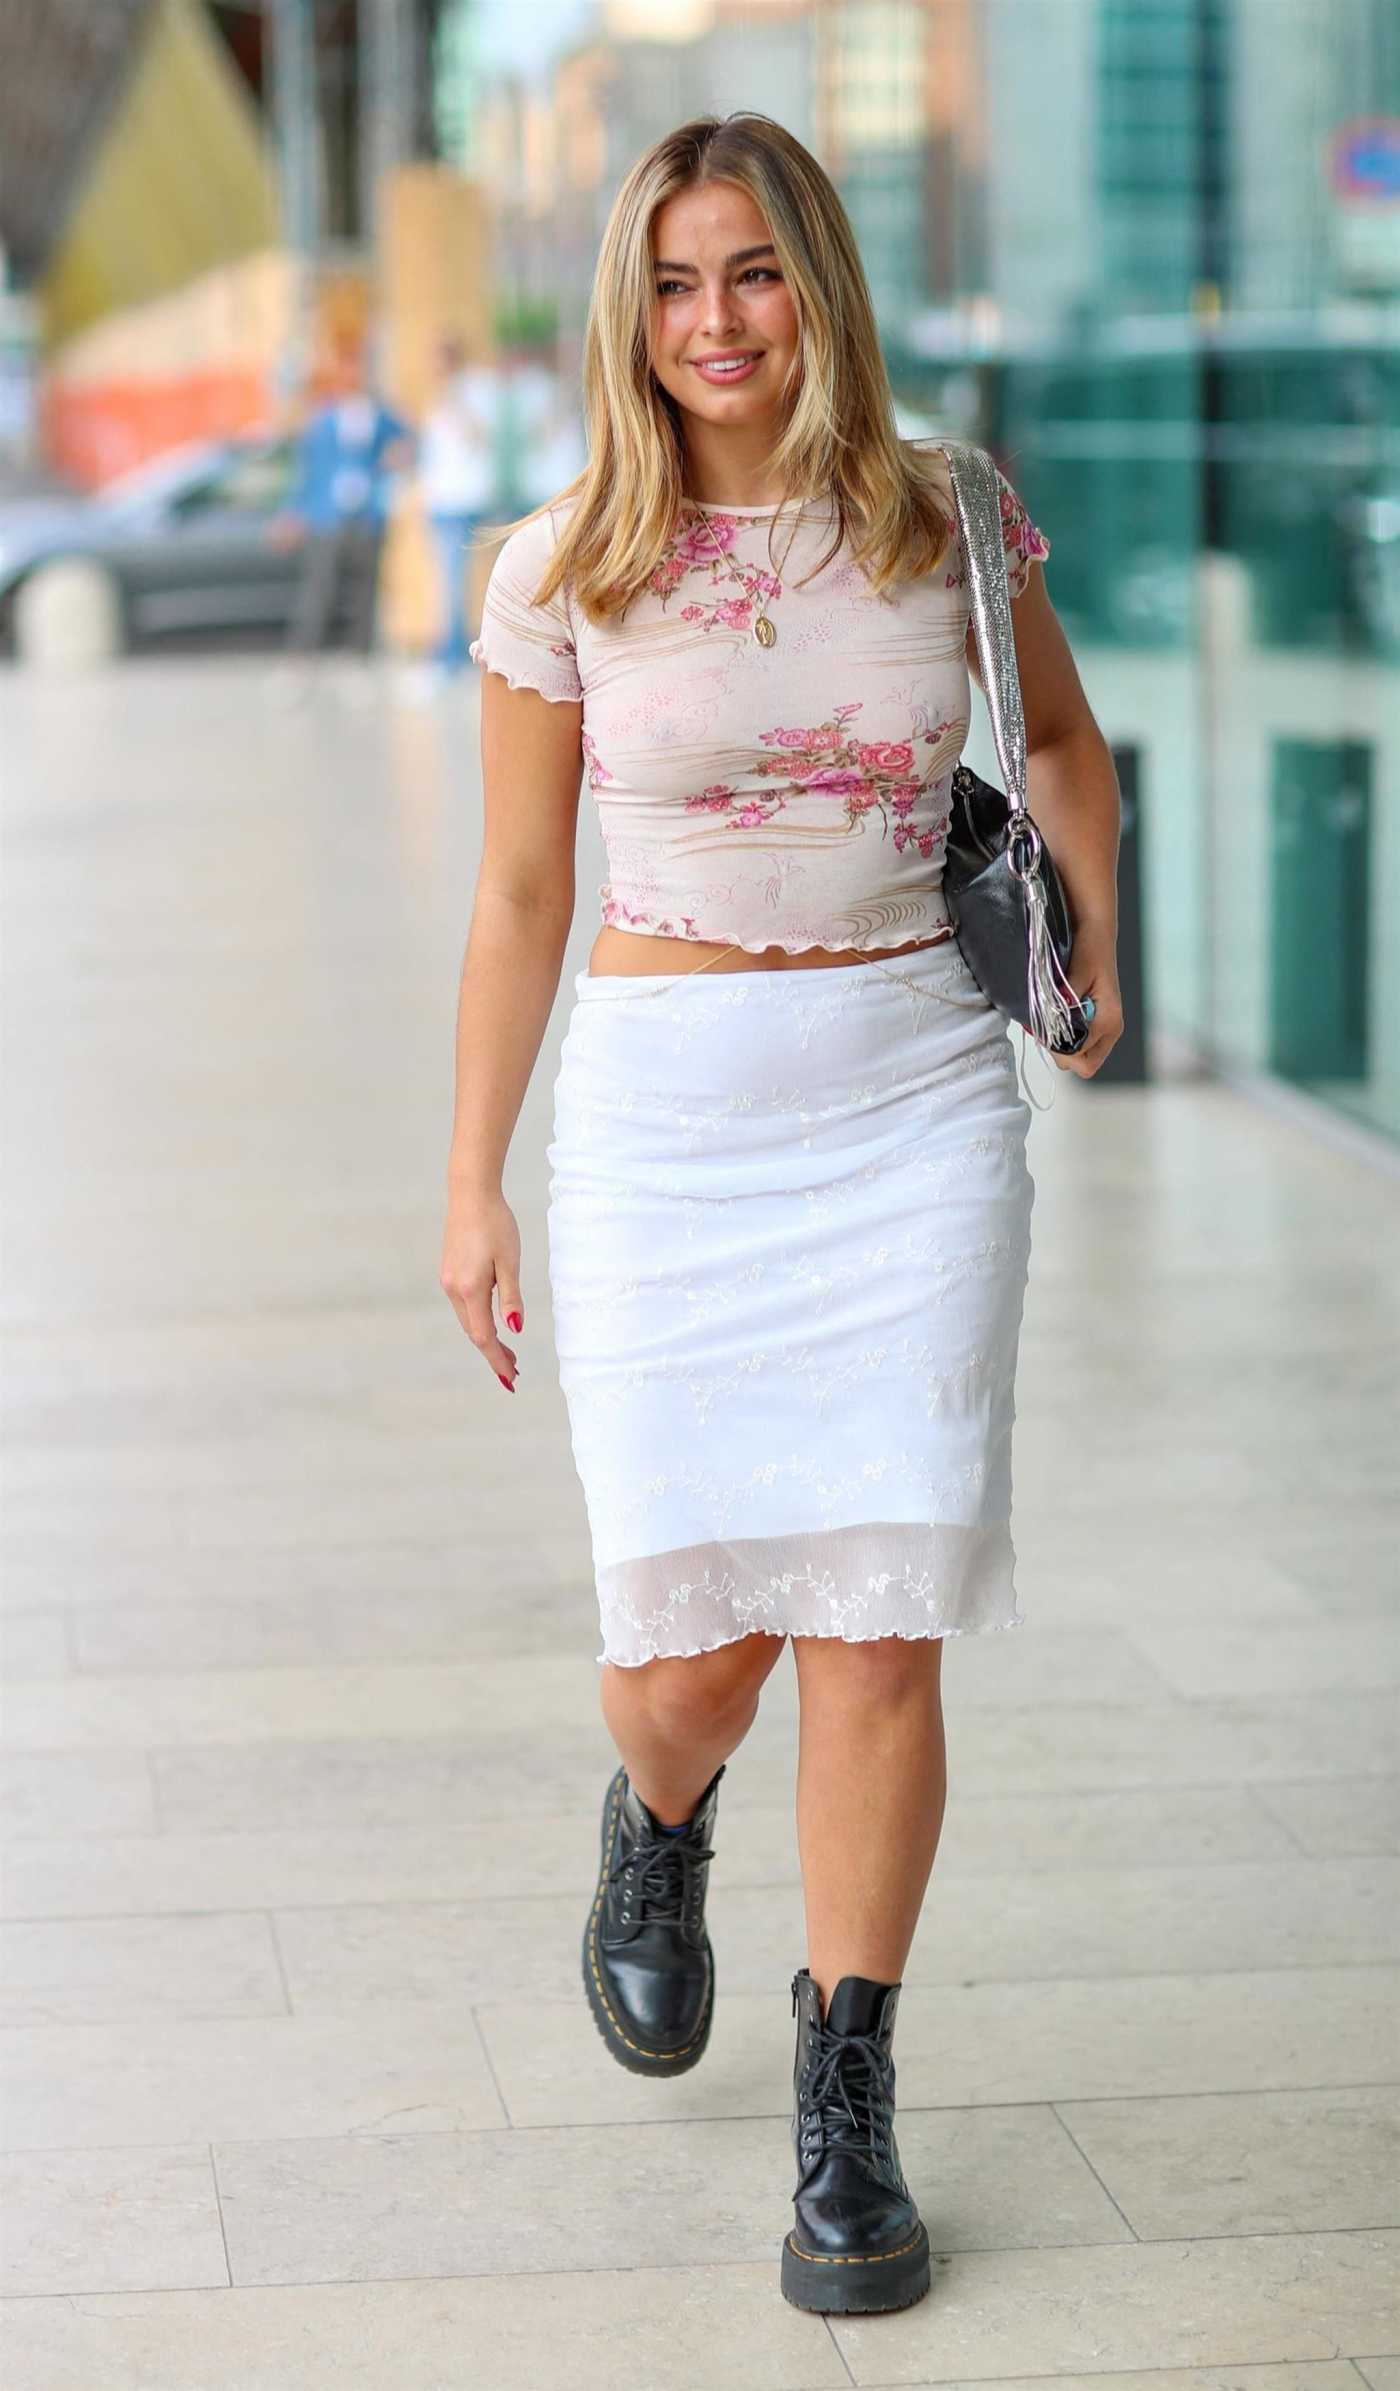 Addison Rae in a White Skirt Was Seen Out in Milan 09/23/2021